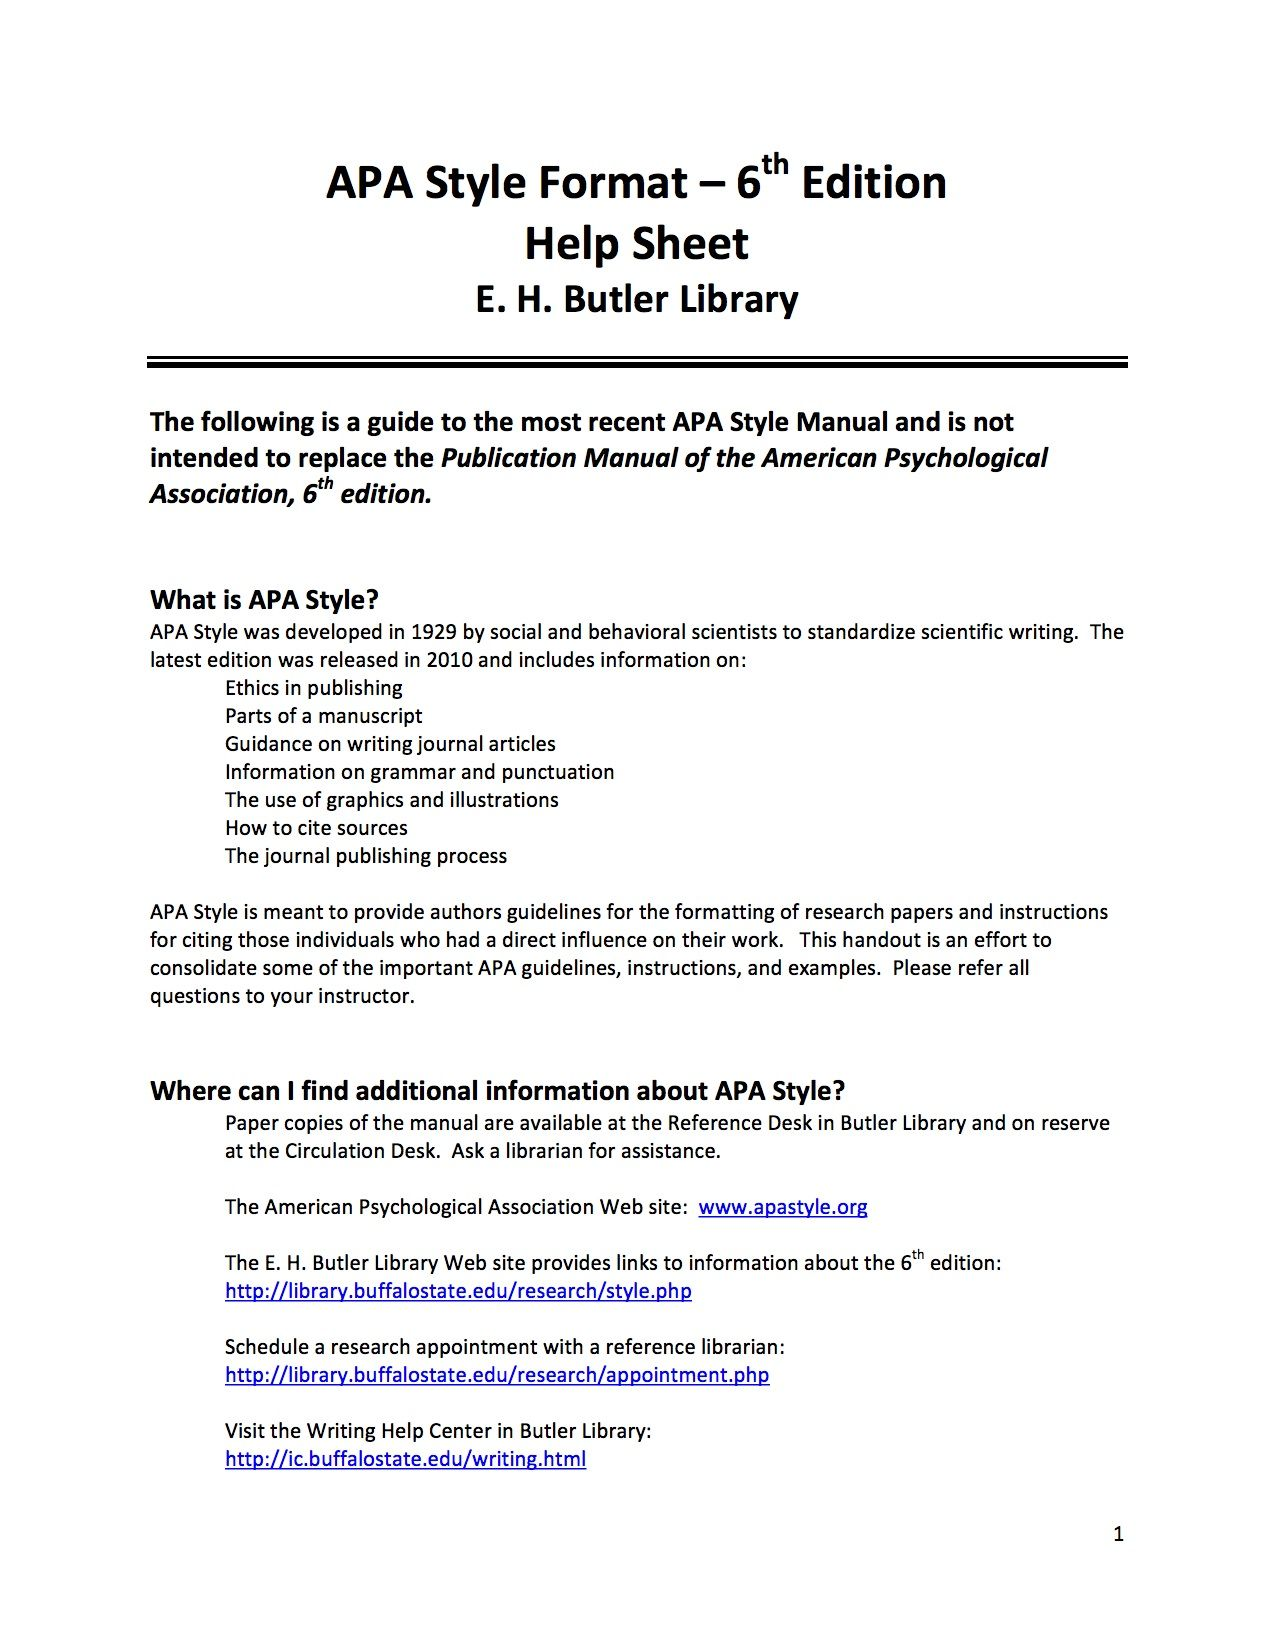 Butler Library S Apa Help Sheet American Psychological Association Format 6th Edition Research Paper Purdue Owl Bibliography Generator